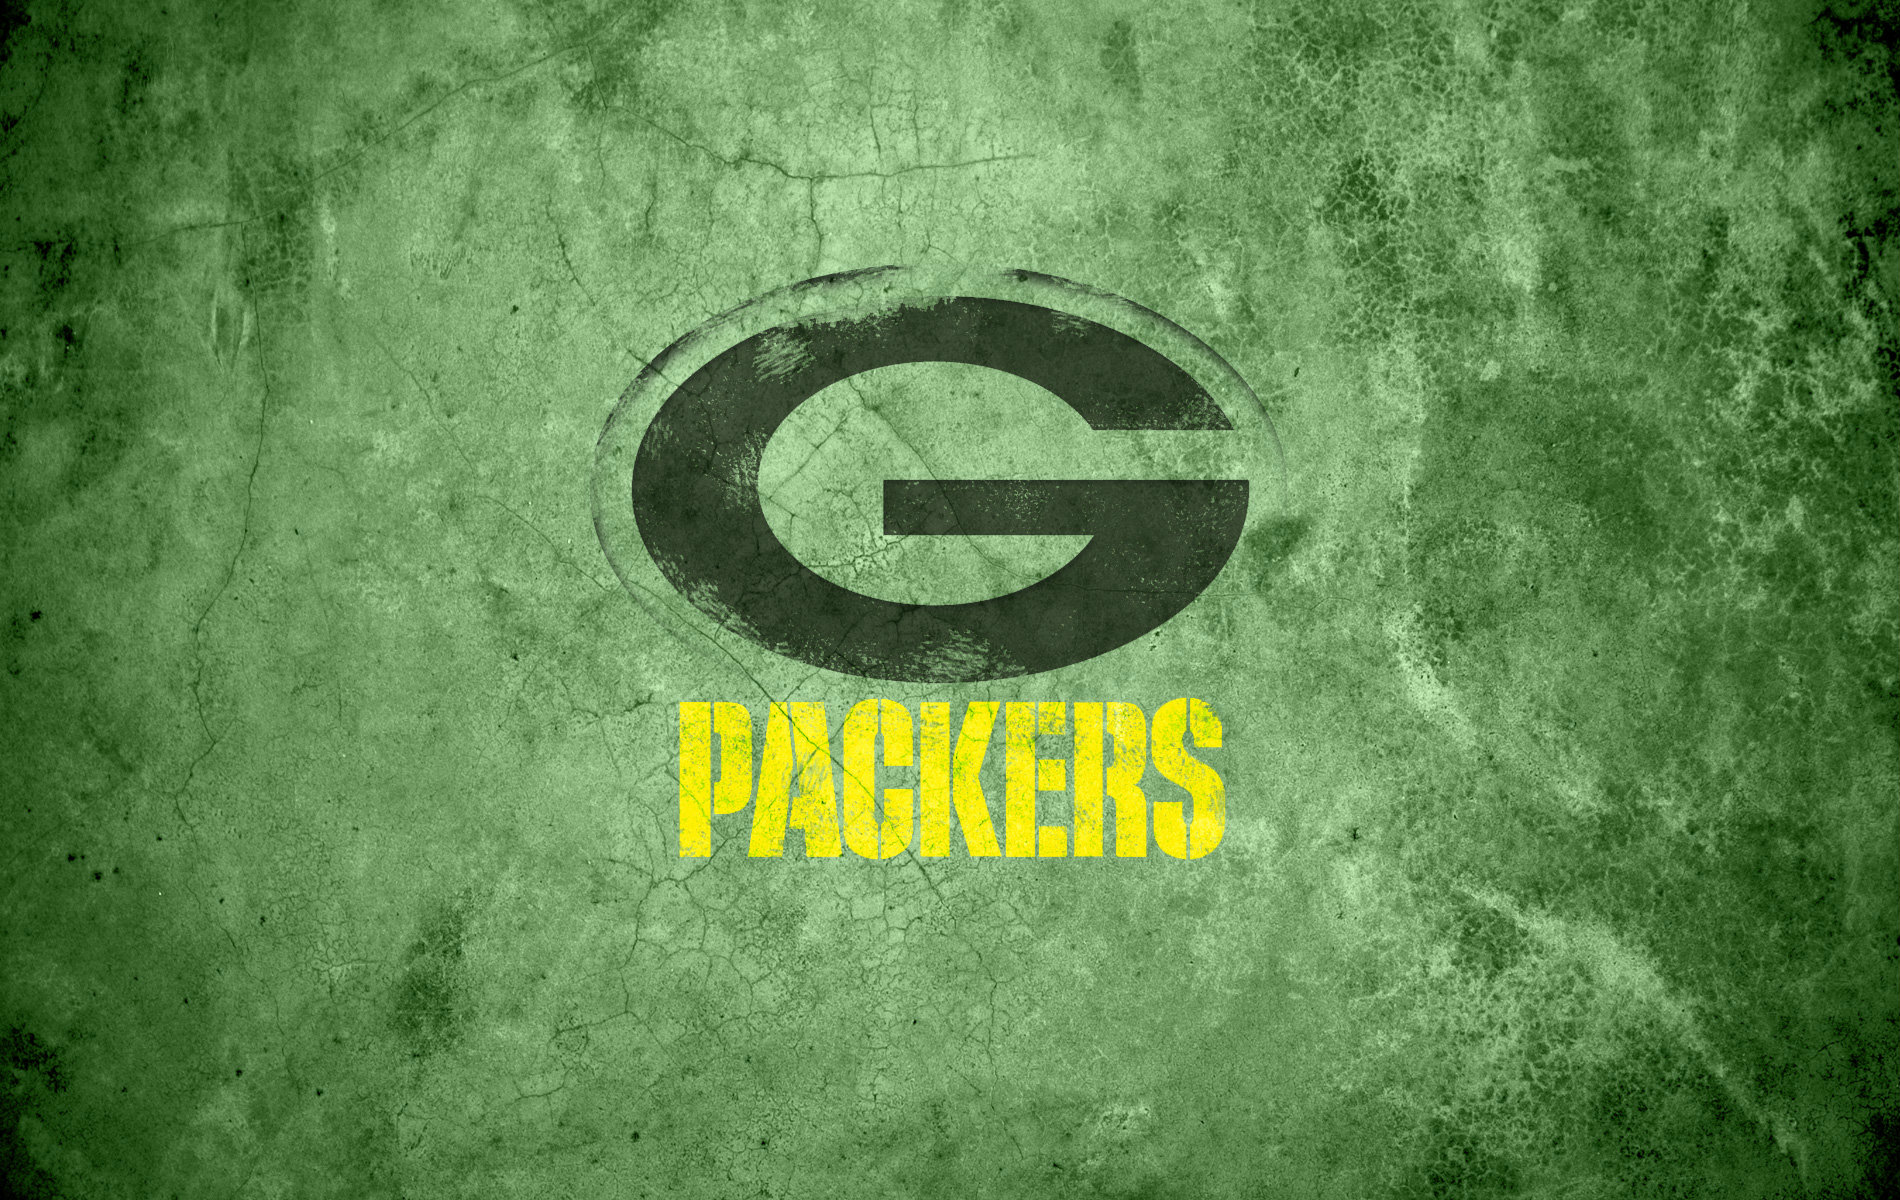 Green Bay Packers images packers HD wallpaper and background photos